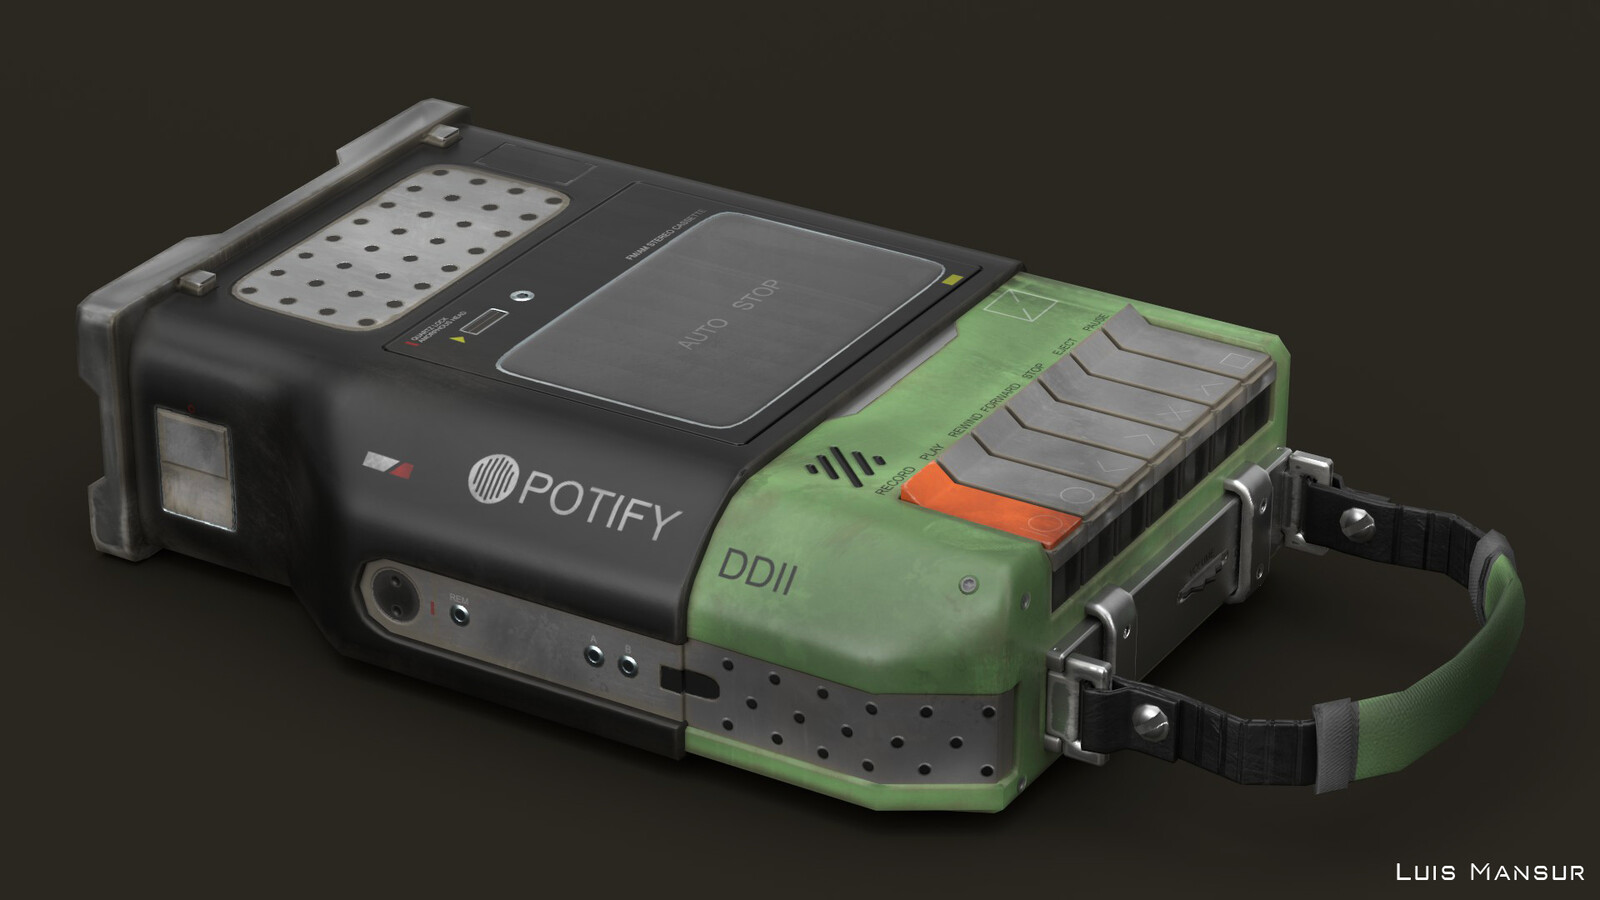 Potify Cassette Player